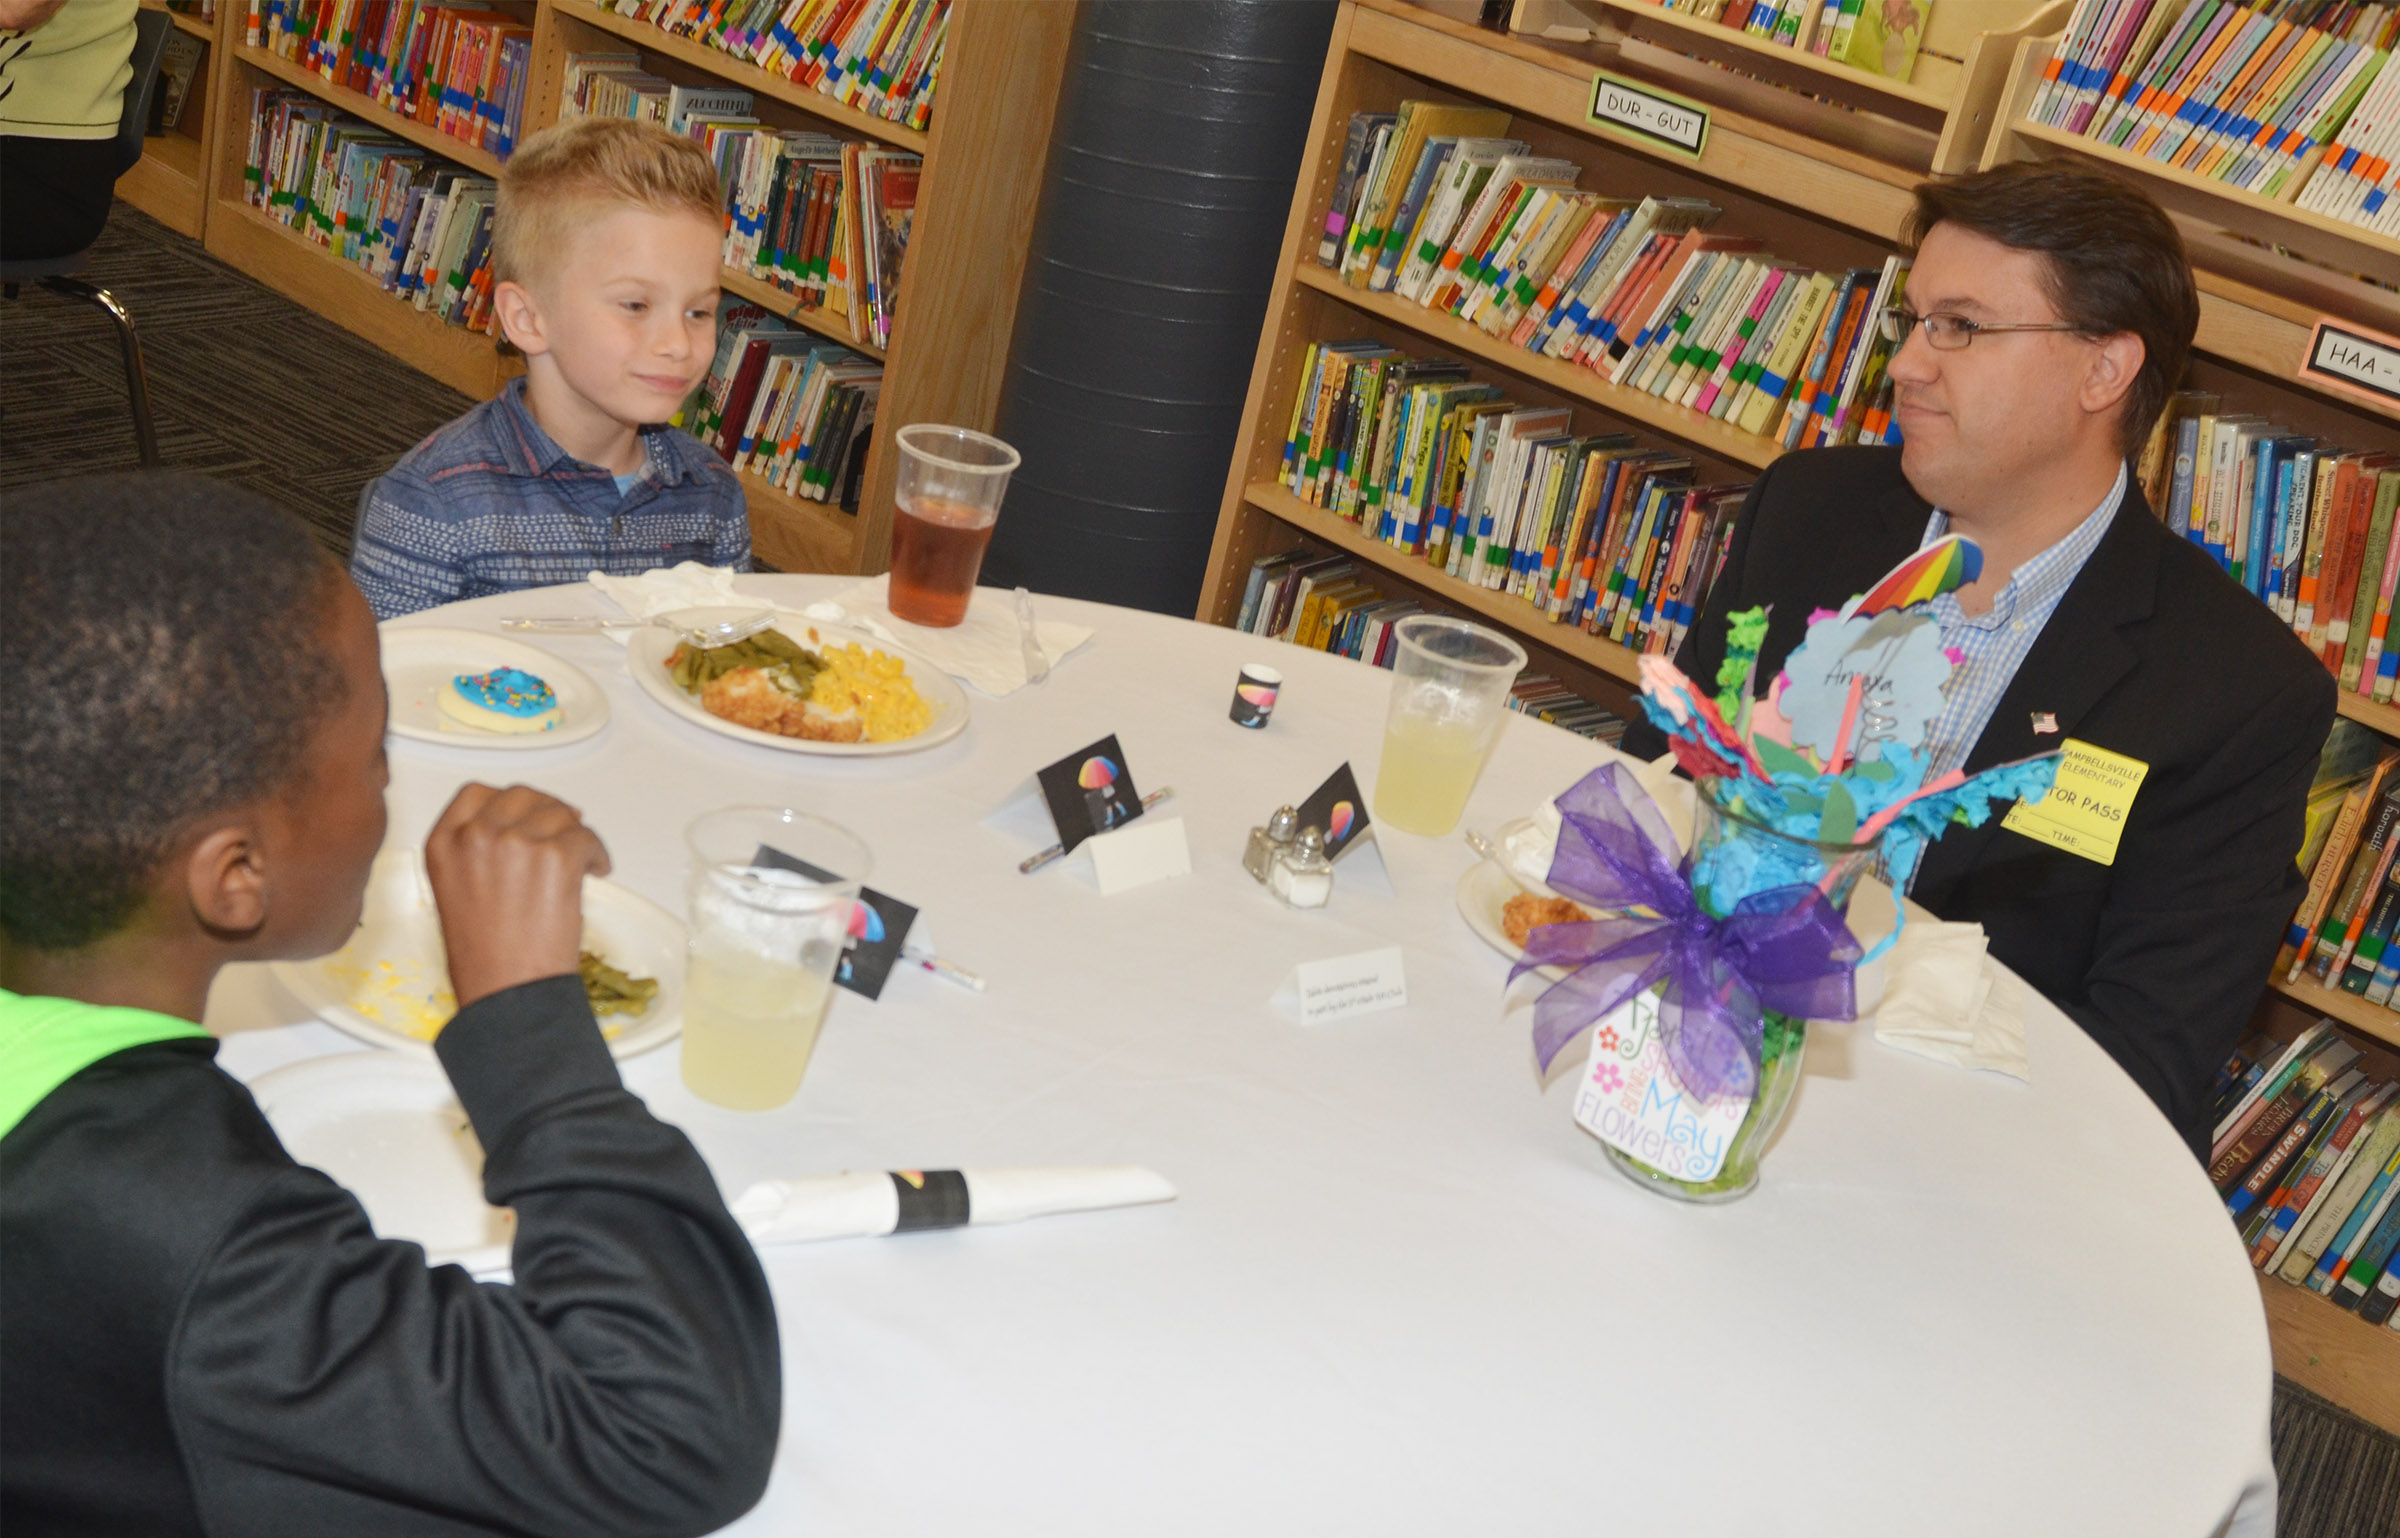 Dave DeBrot, financial advisor at Edward Jones, has lunch with CES third-grader John Gholston, at left, and first-grader Parker Hamilton.